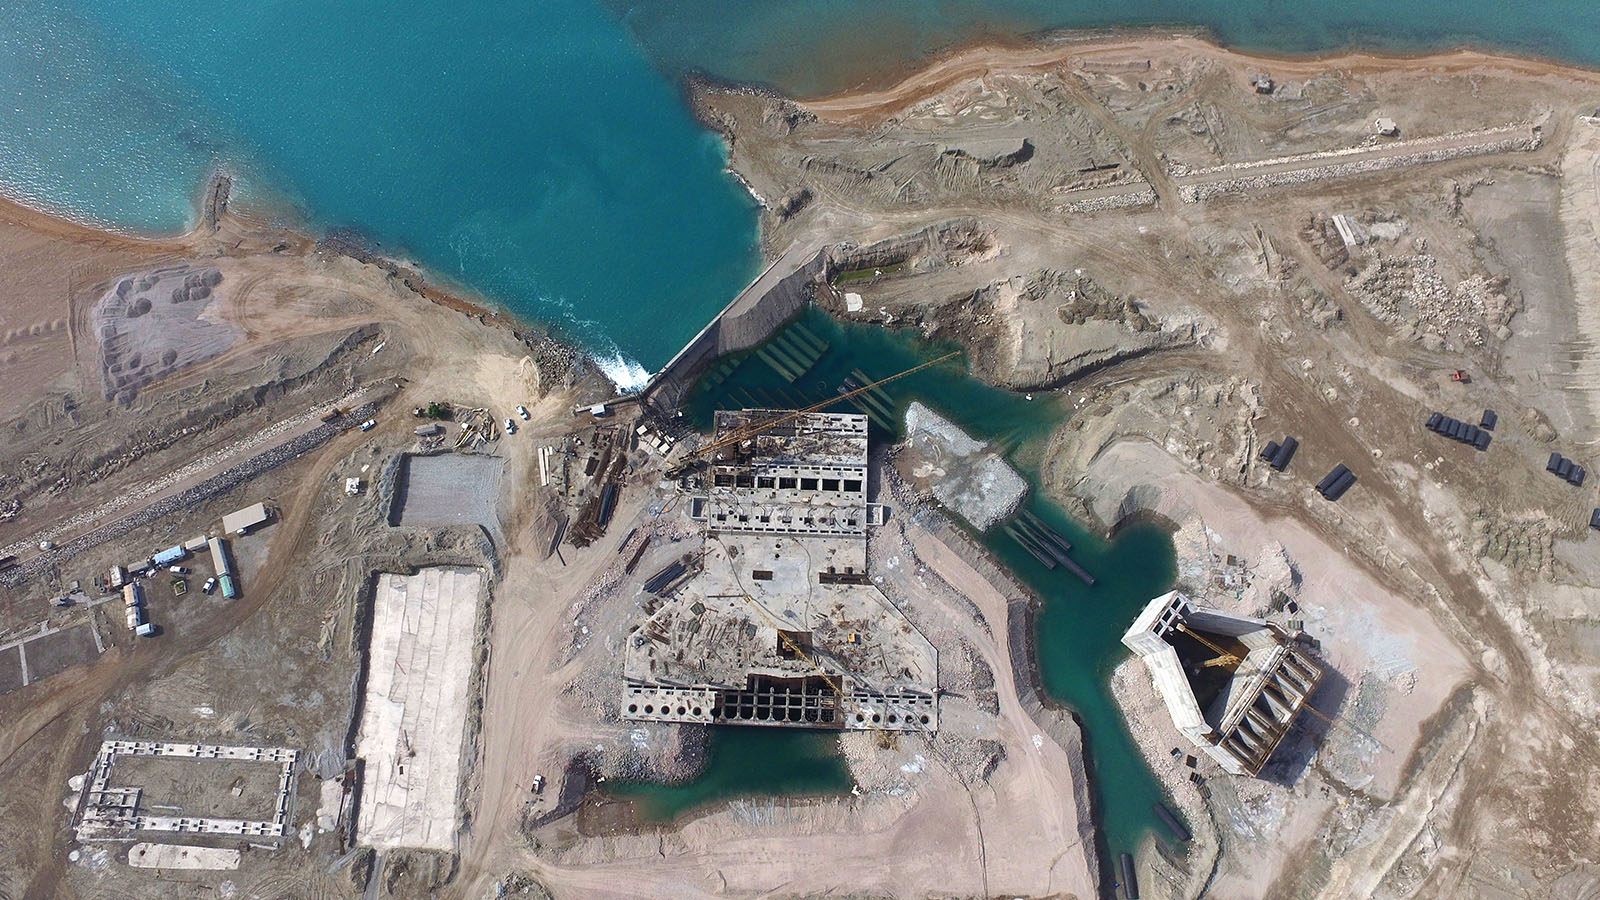 The largest Water Pipe Transmission Project In Iran